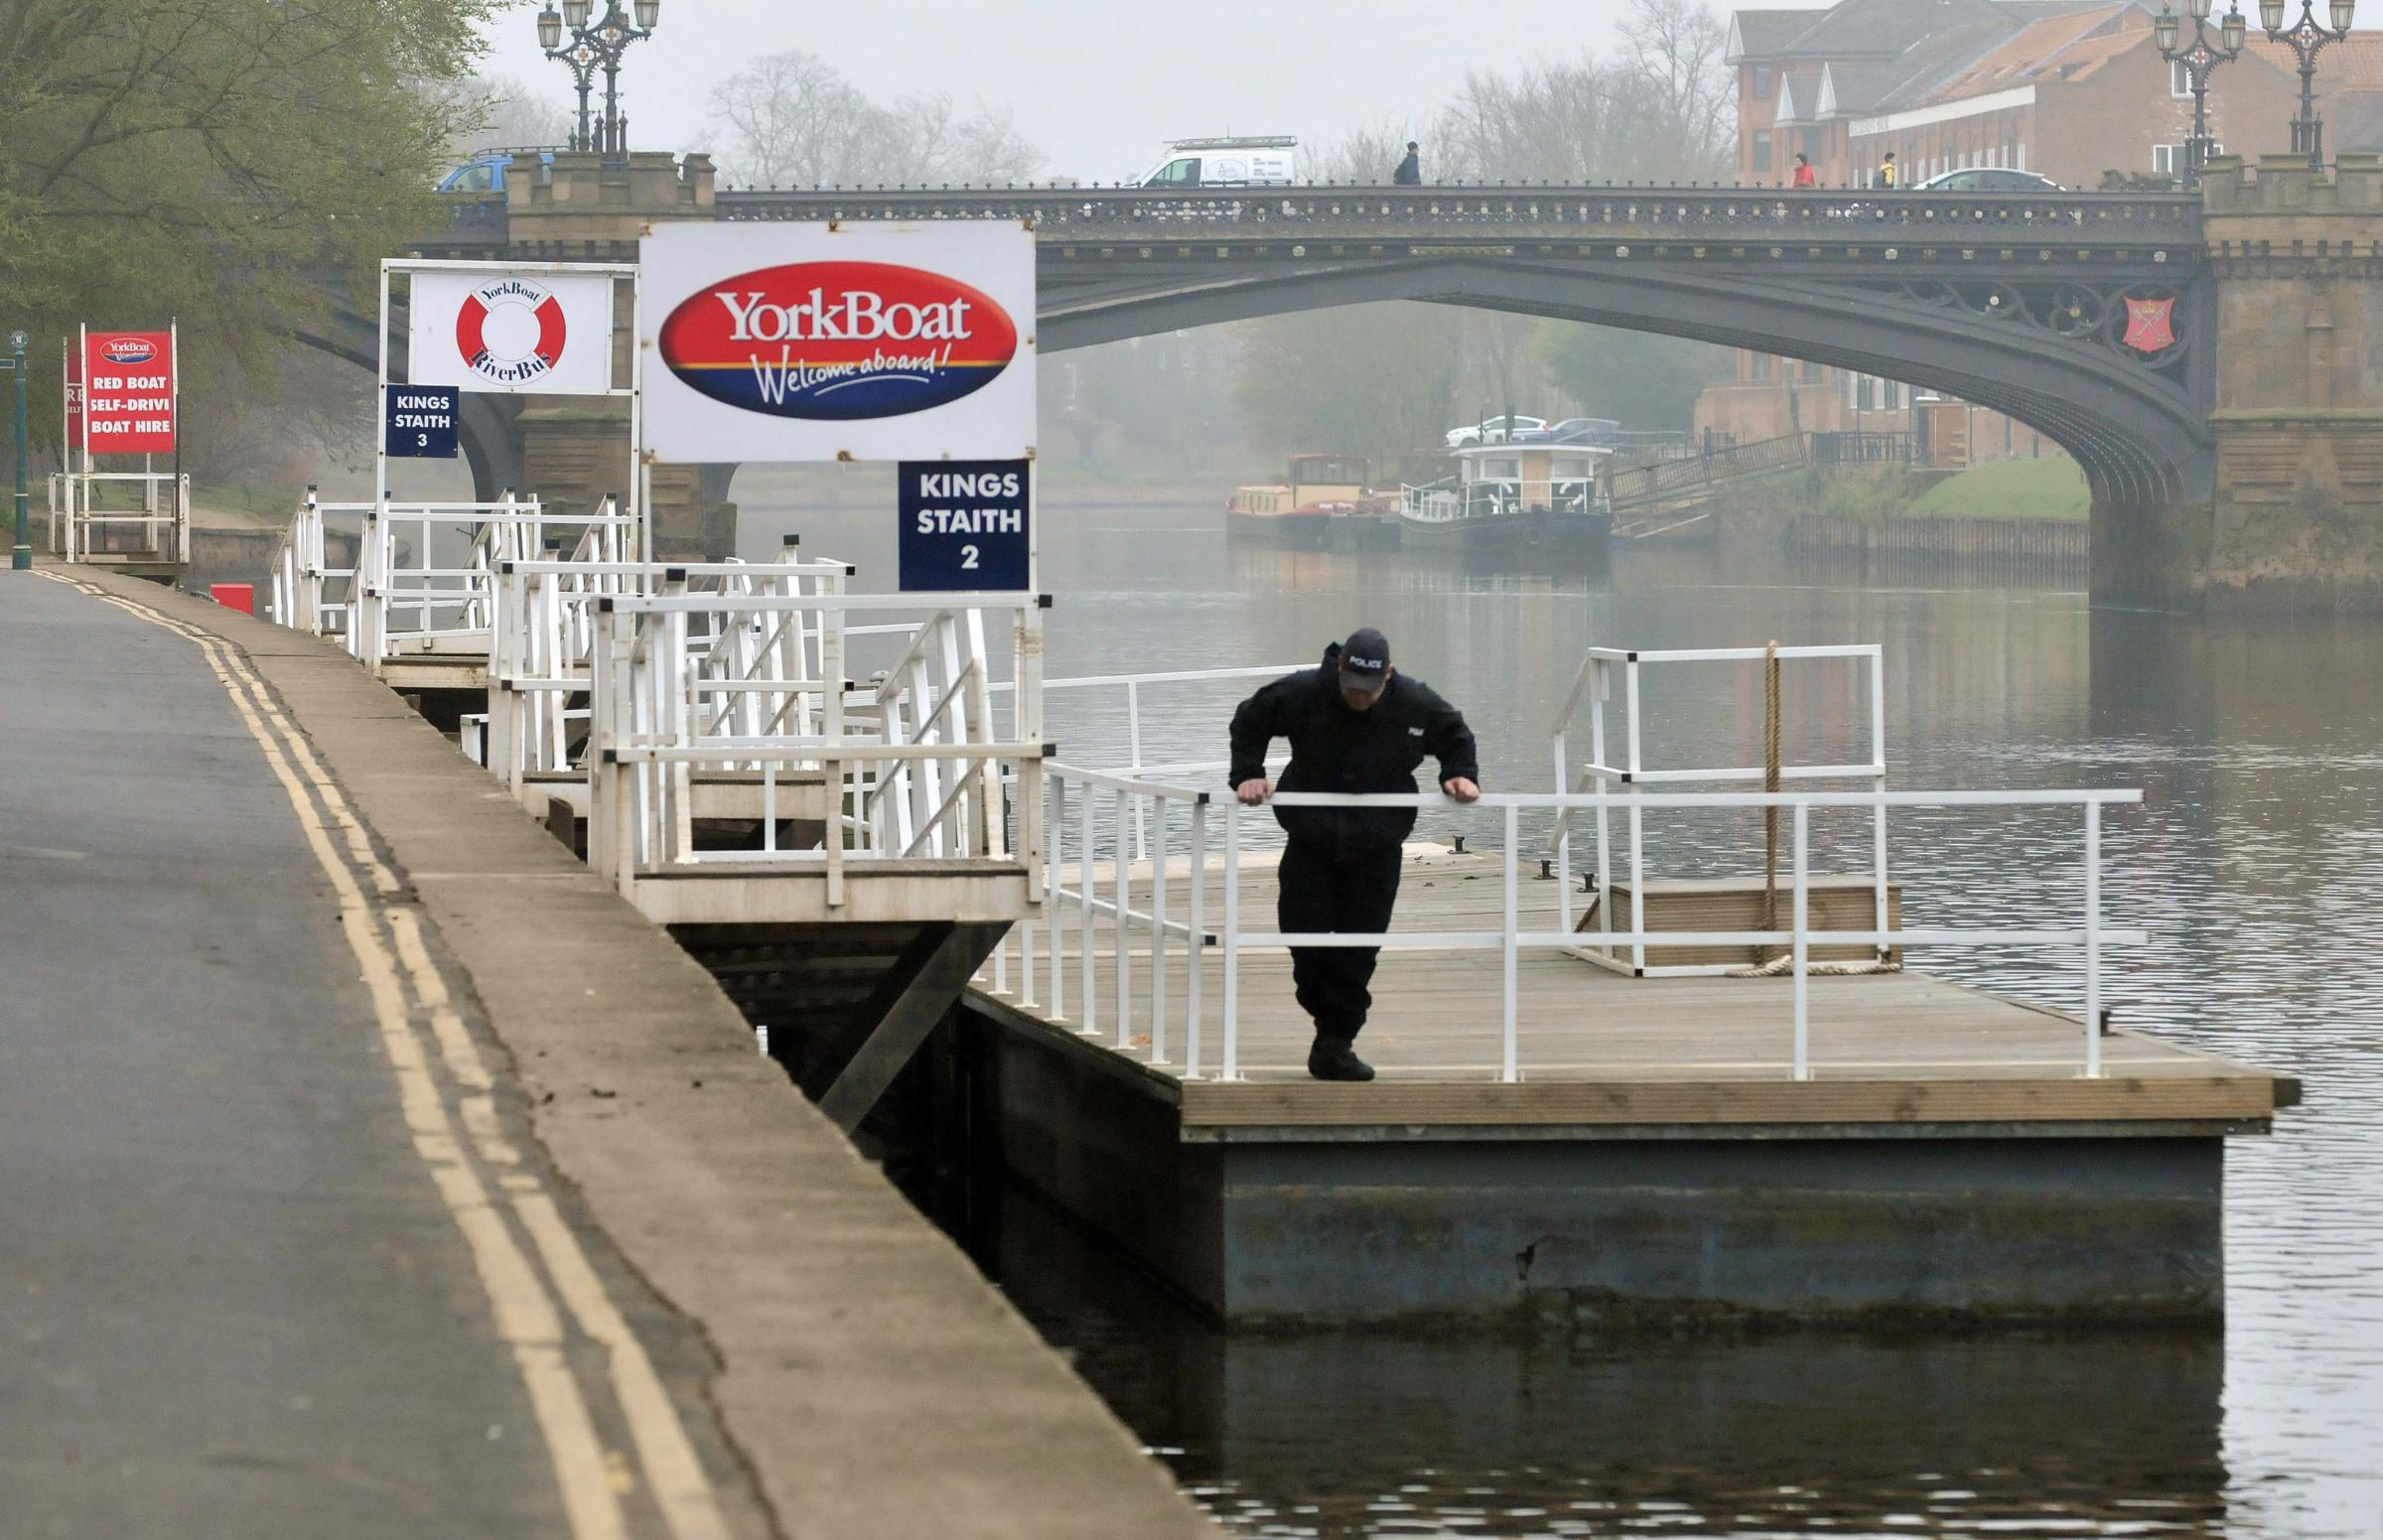 Missing teenager thought to have been trying to swim across River Ouse